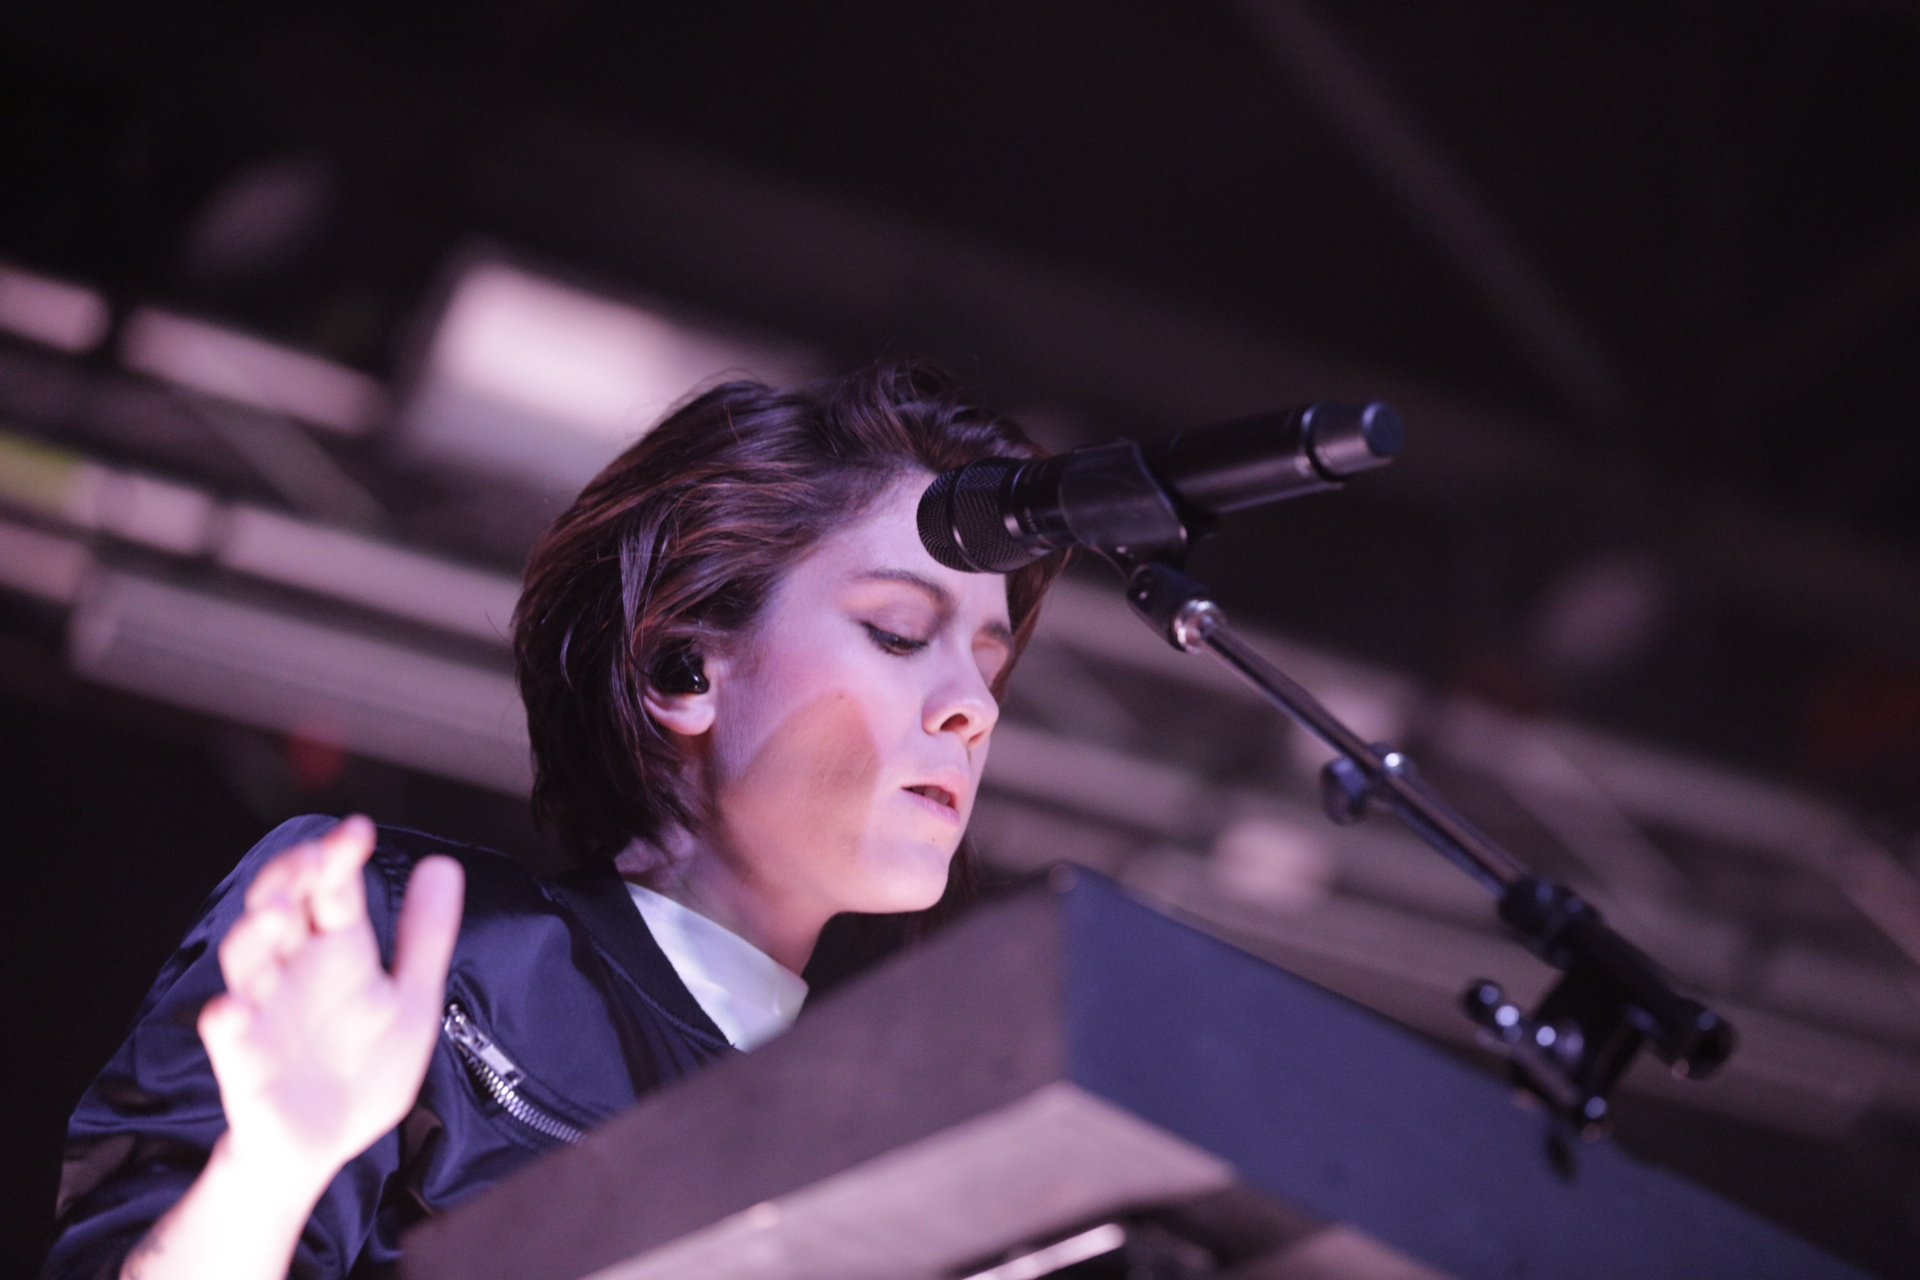 Tegan of Tegan and Sara playing keyboards onstage in Salt Lake City. Photo: @Lmsorenson